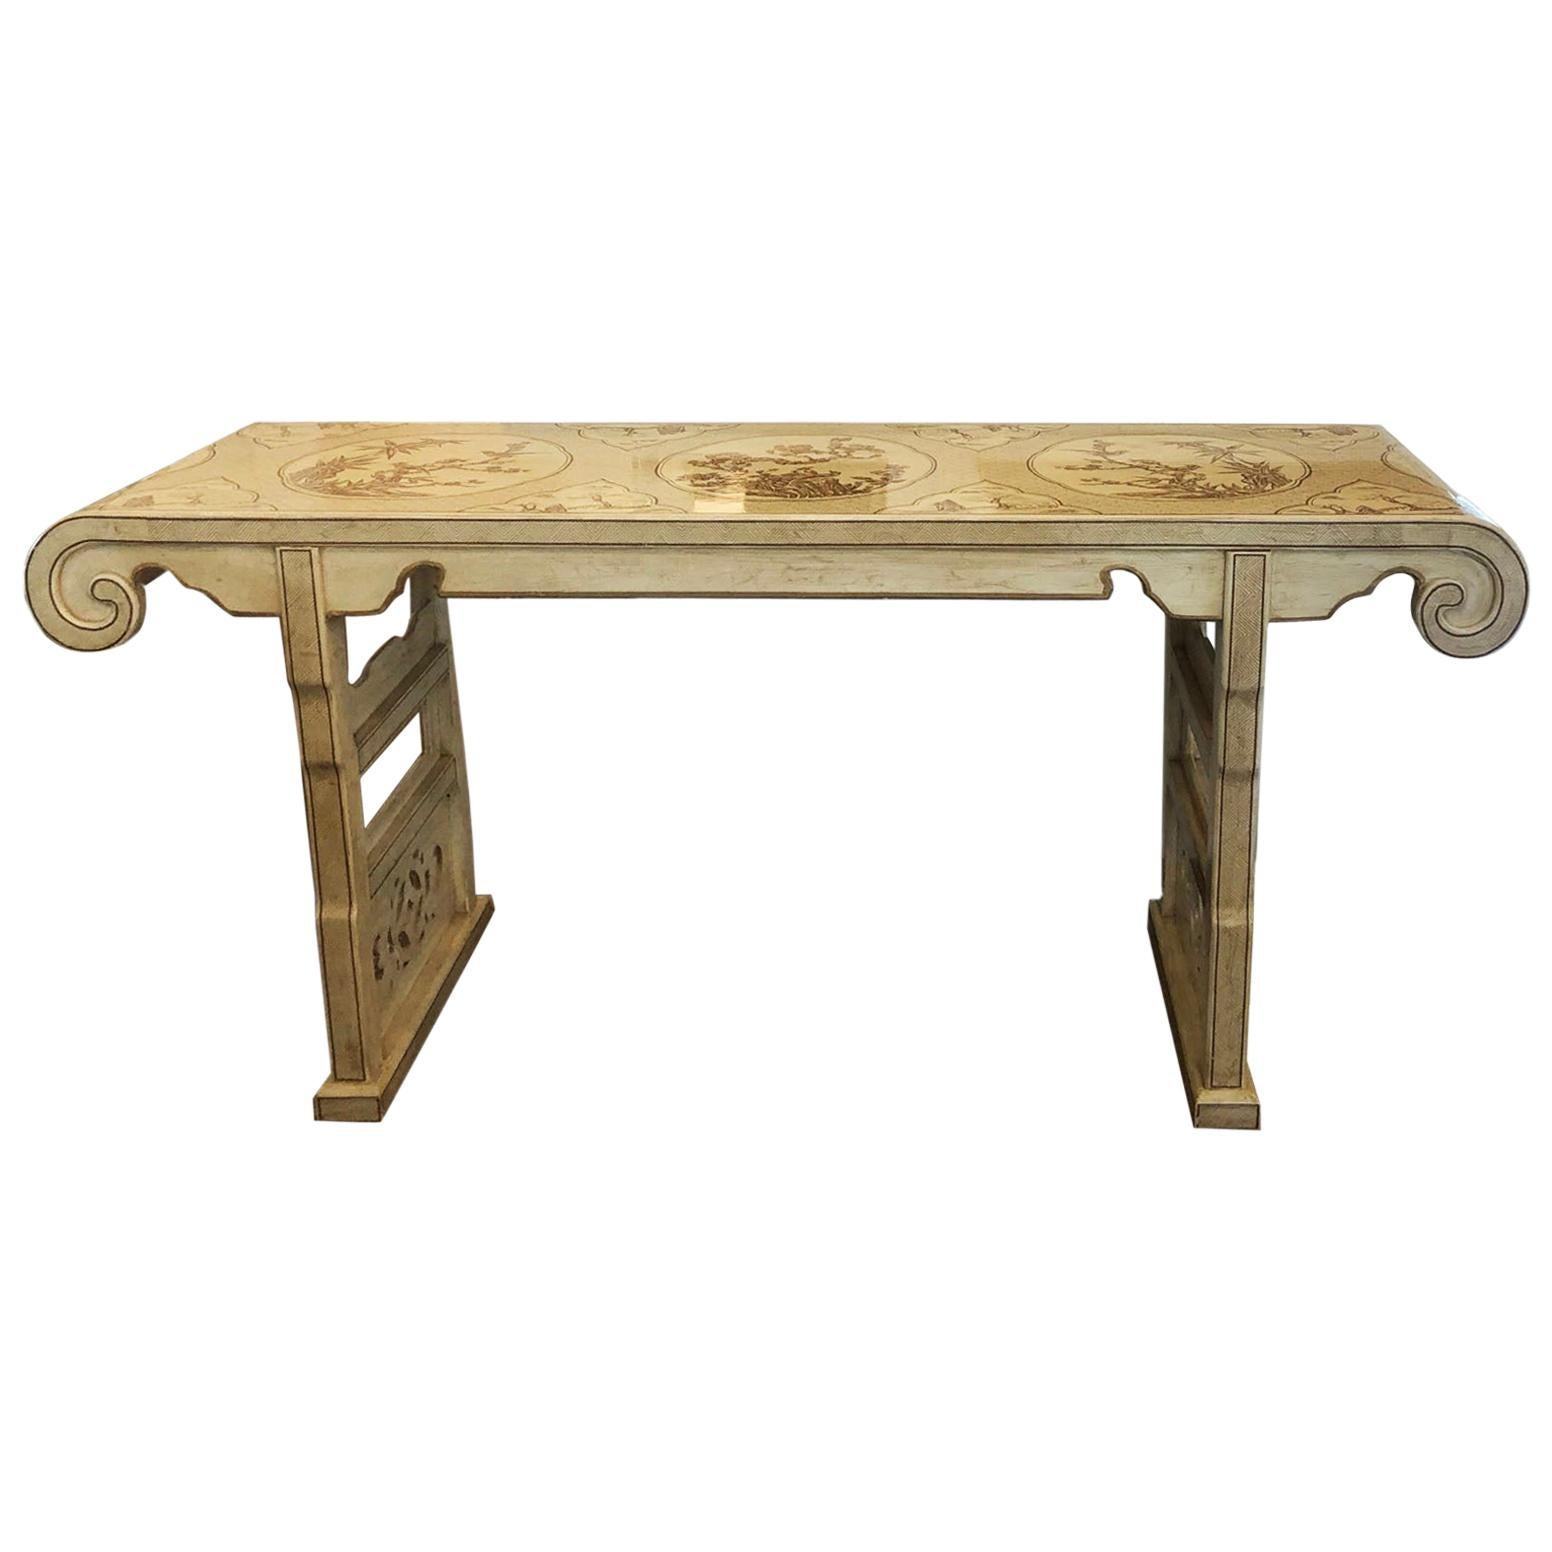 Ming Treasures Drexel Heritage chinoiserie Sofa Table Console Table